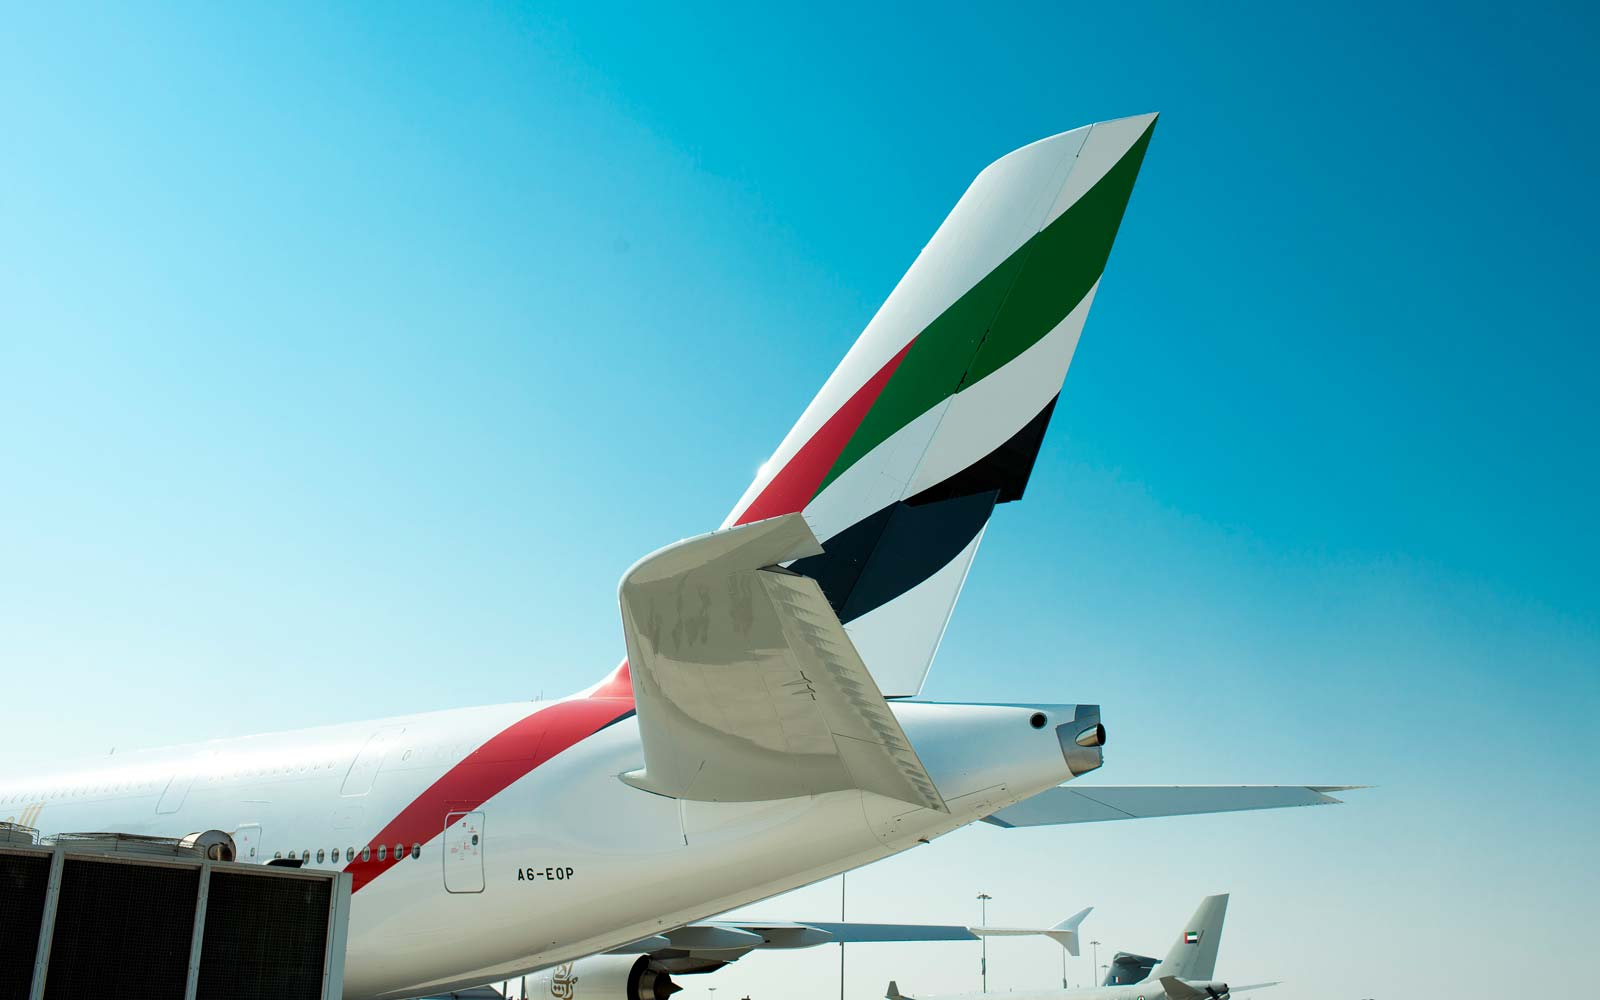 Tail of an Airbus A380 operated by Emirates at the Dubai Airshow